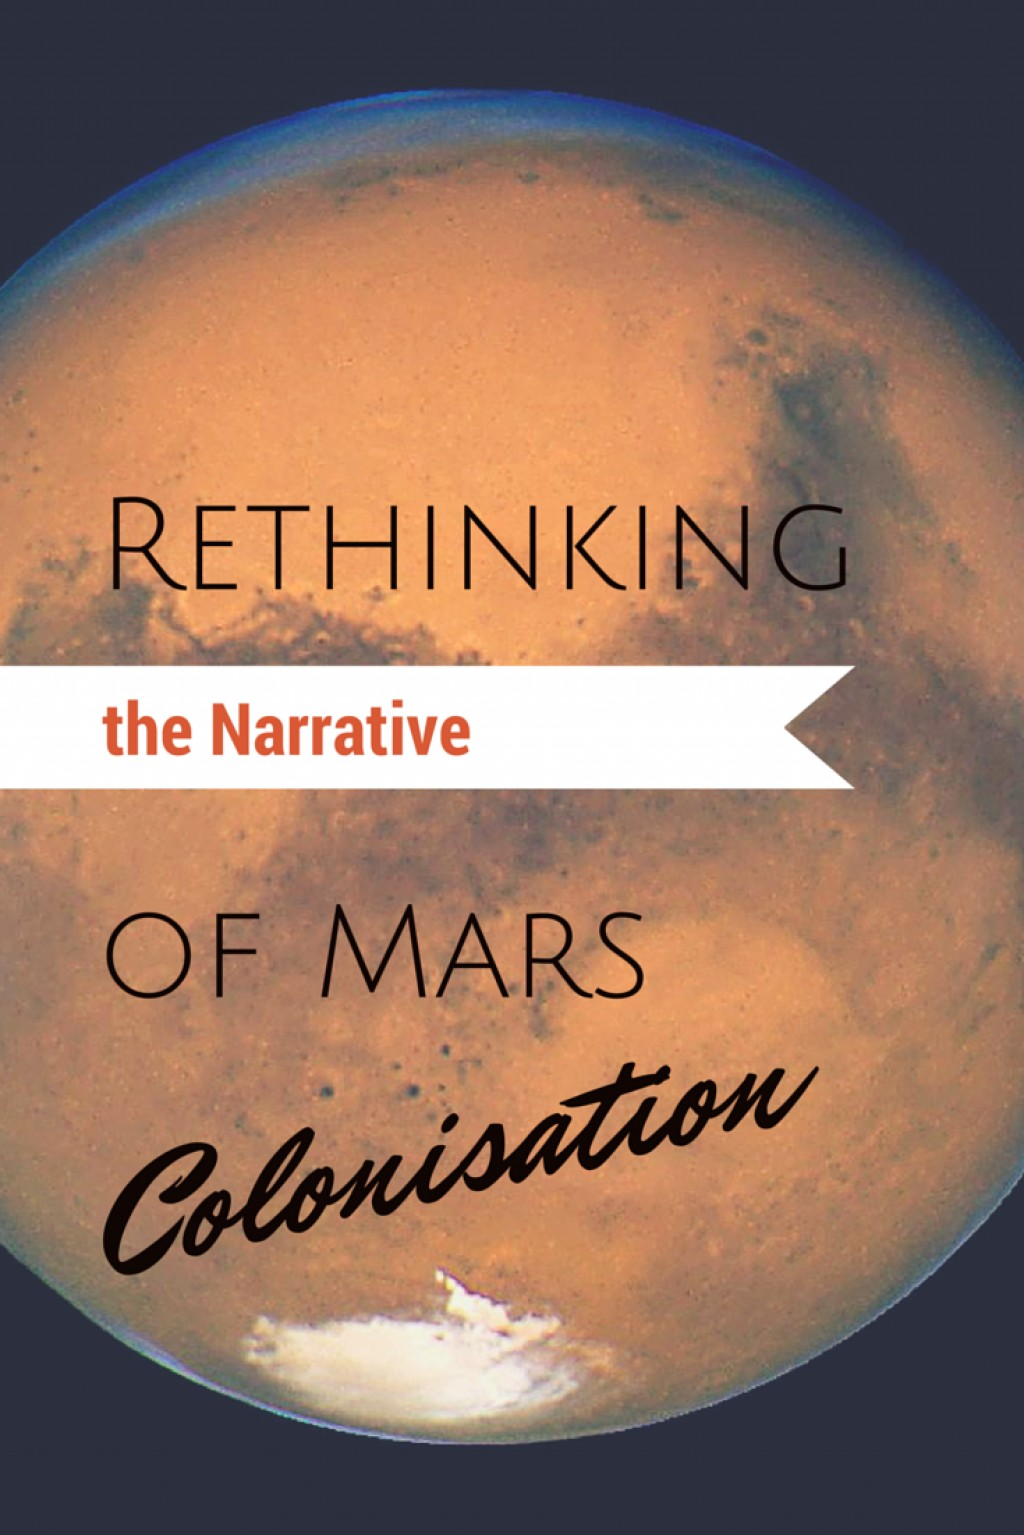 013 Rethinking The Narrative Of Mars Colonisation Essay Example Settlement Remarkable On Large